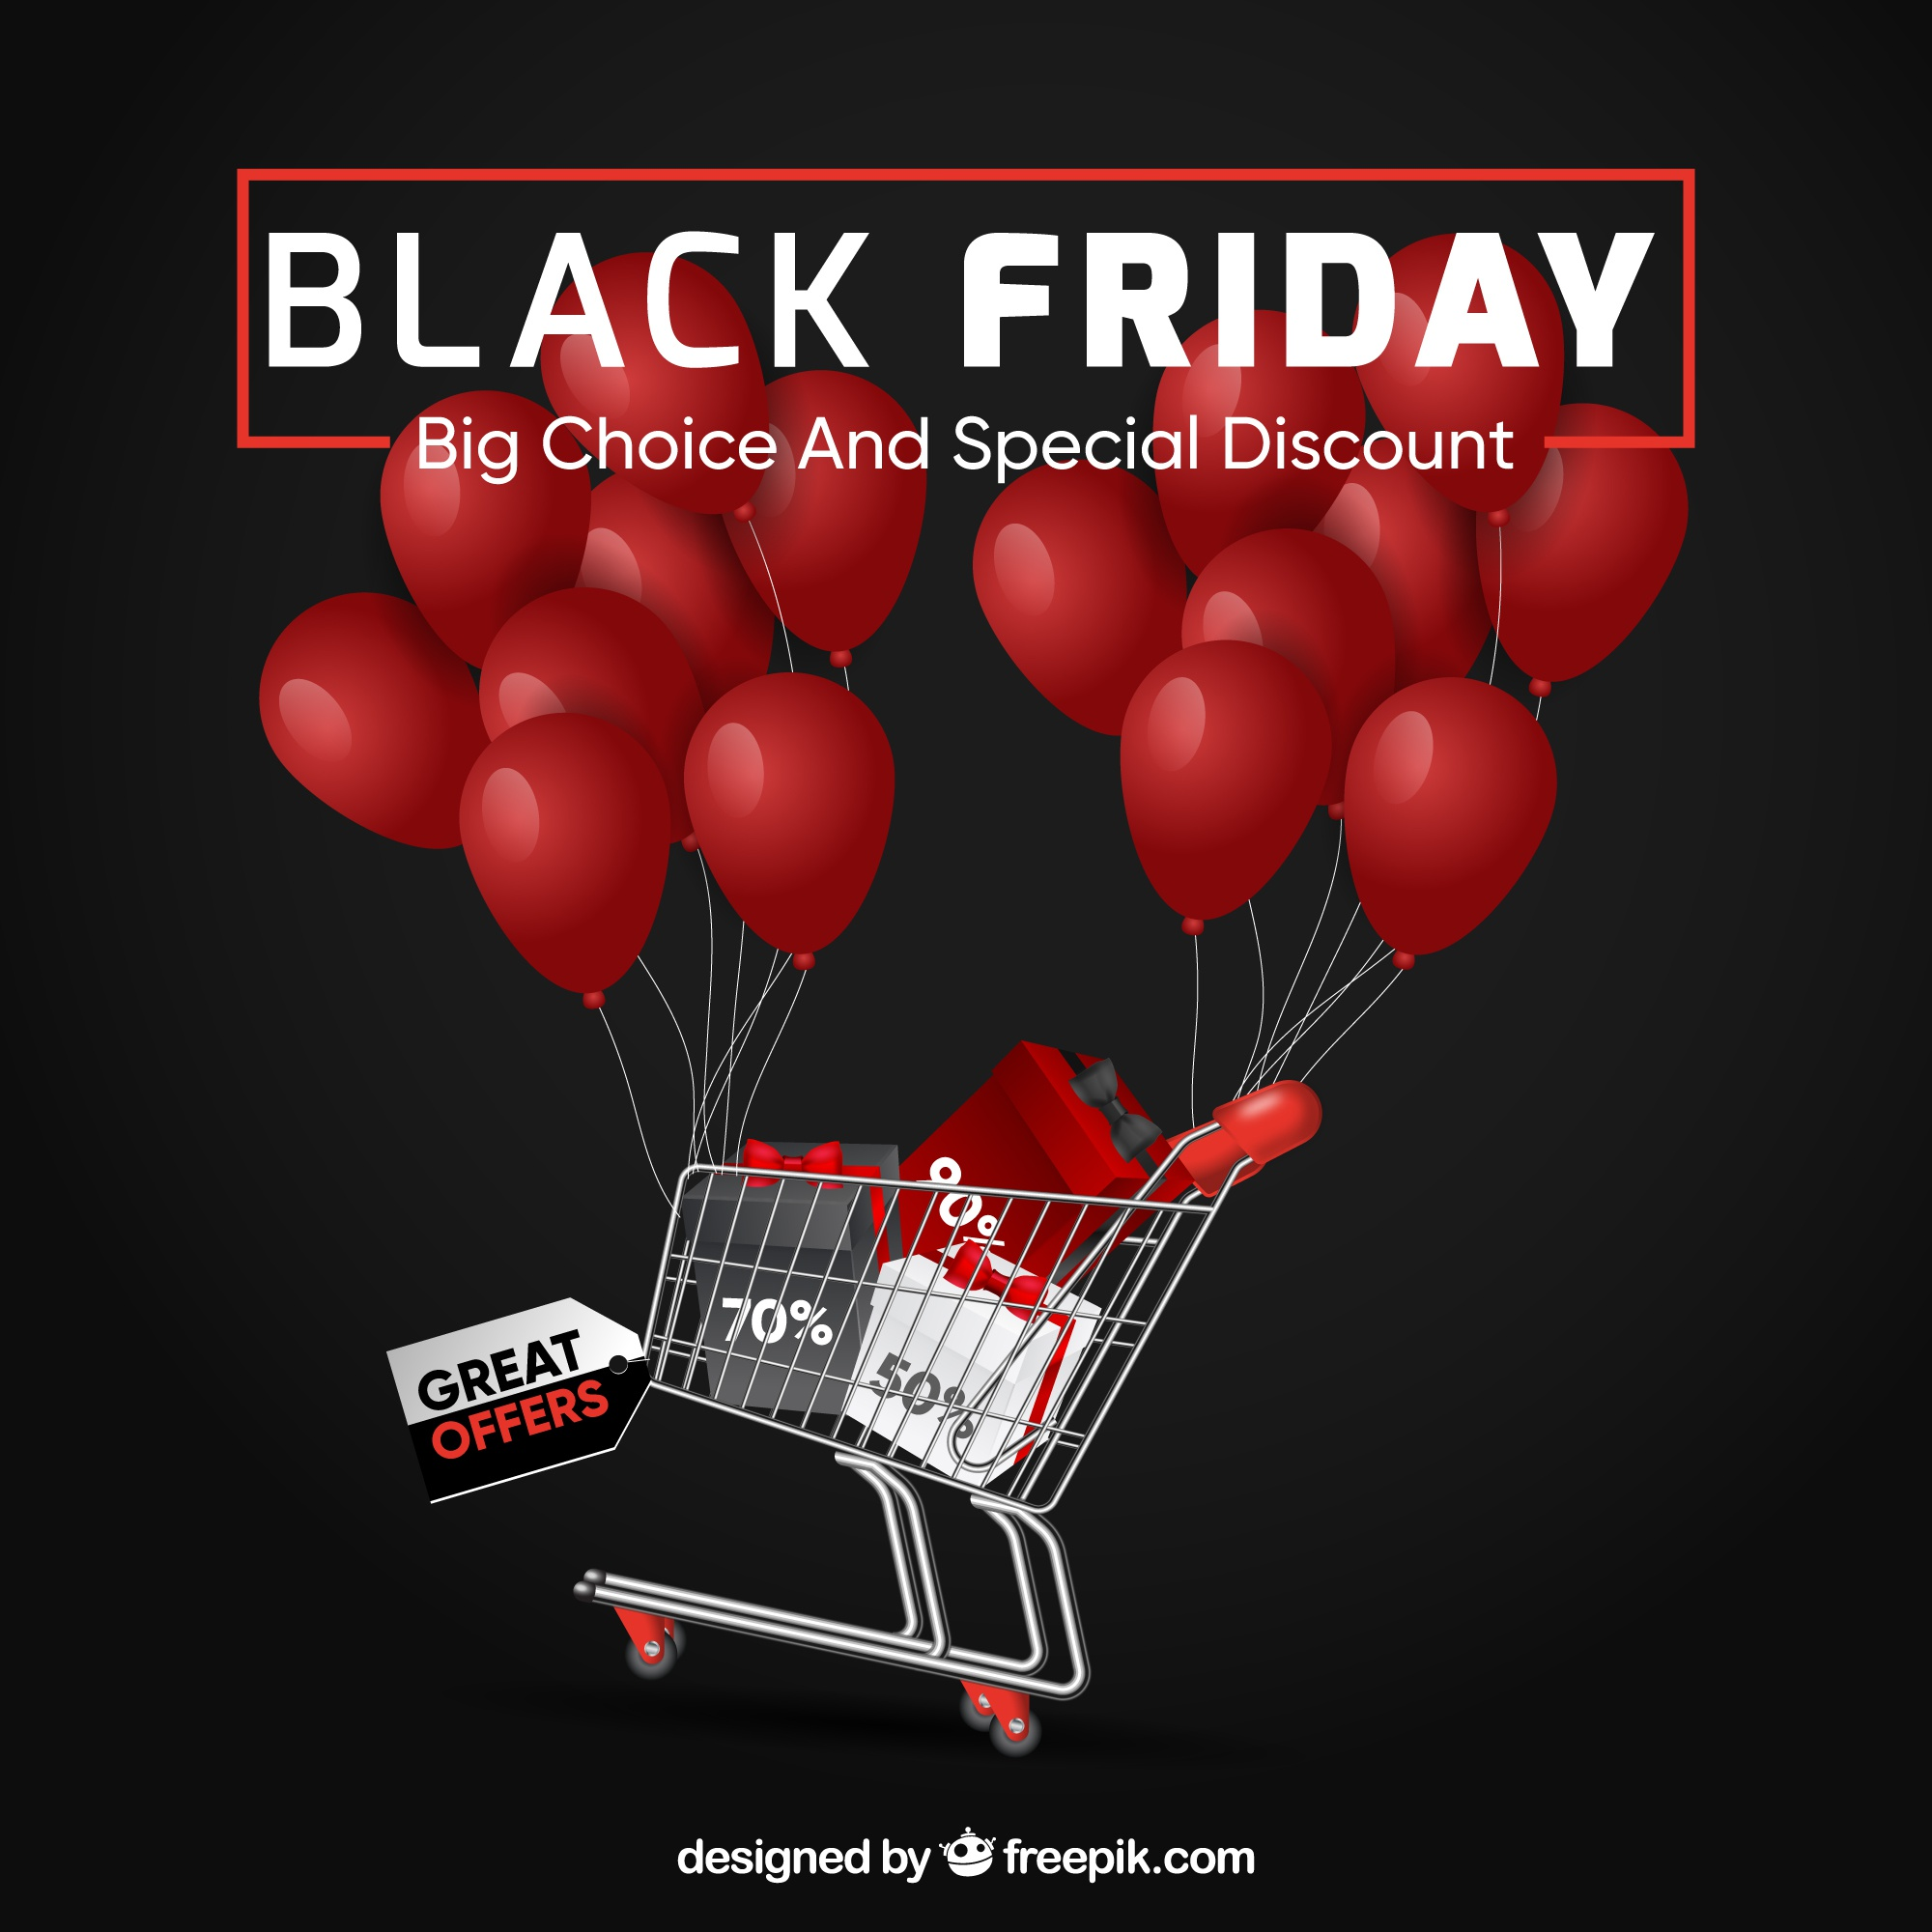 Black friday design with balloons and cart